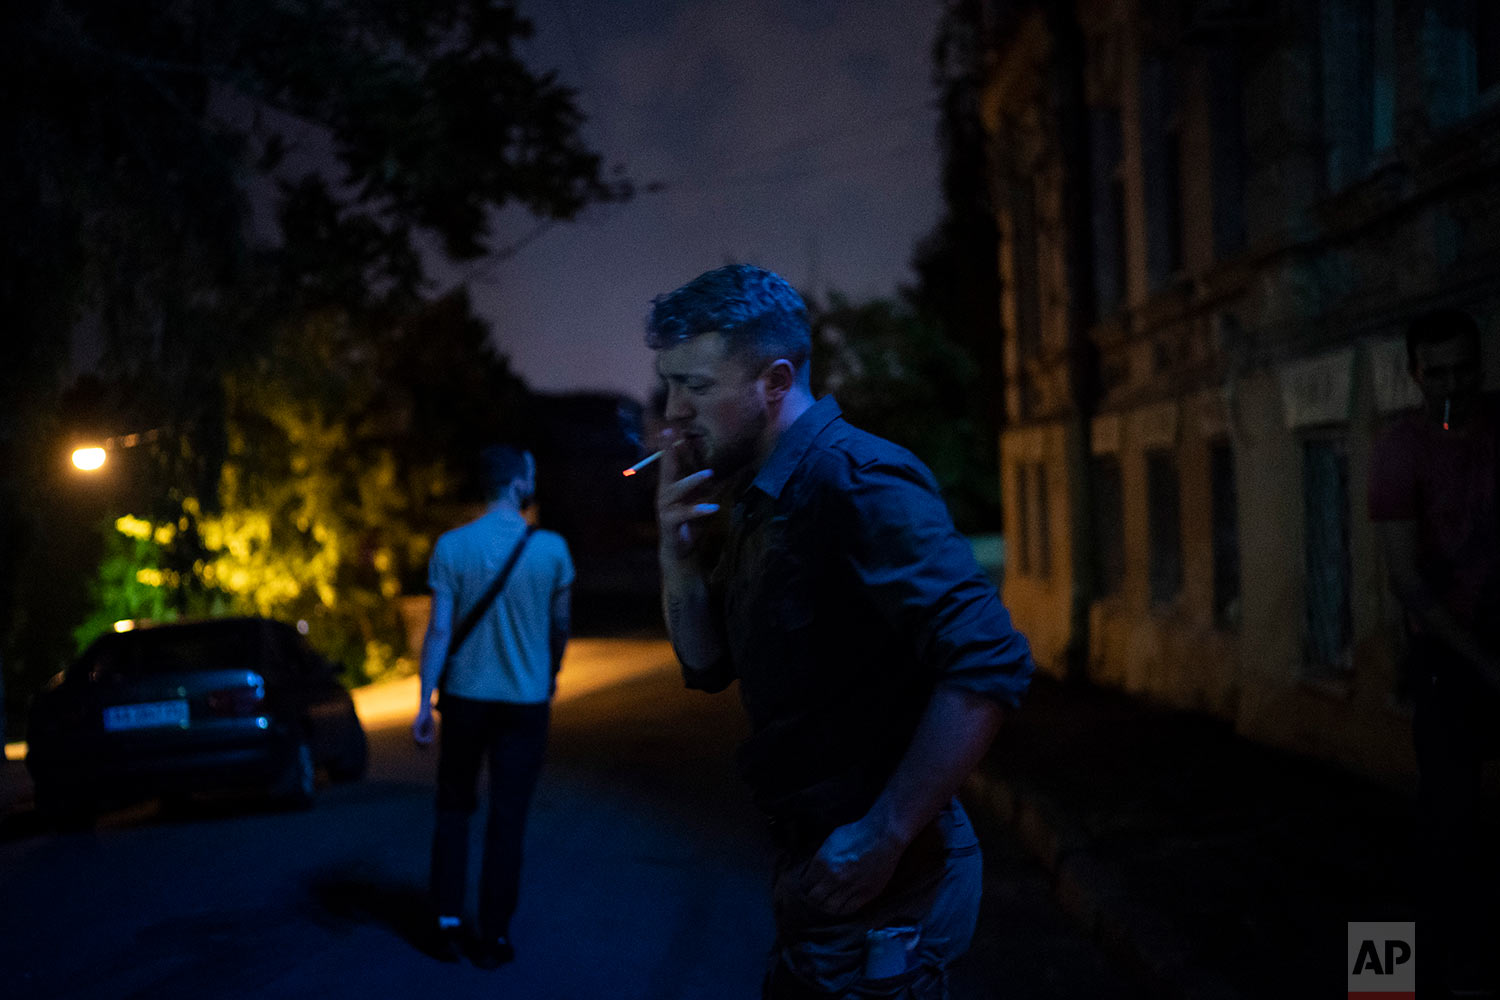 Bogdan Hodakovskiy, leader of 'Tradition and Order' conservative right wing organization smokes in Kiev, Ukraine, July 26, 2018. (AP Photo/Felipe Dana)